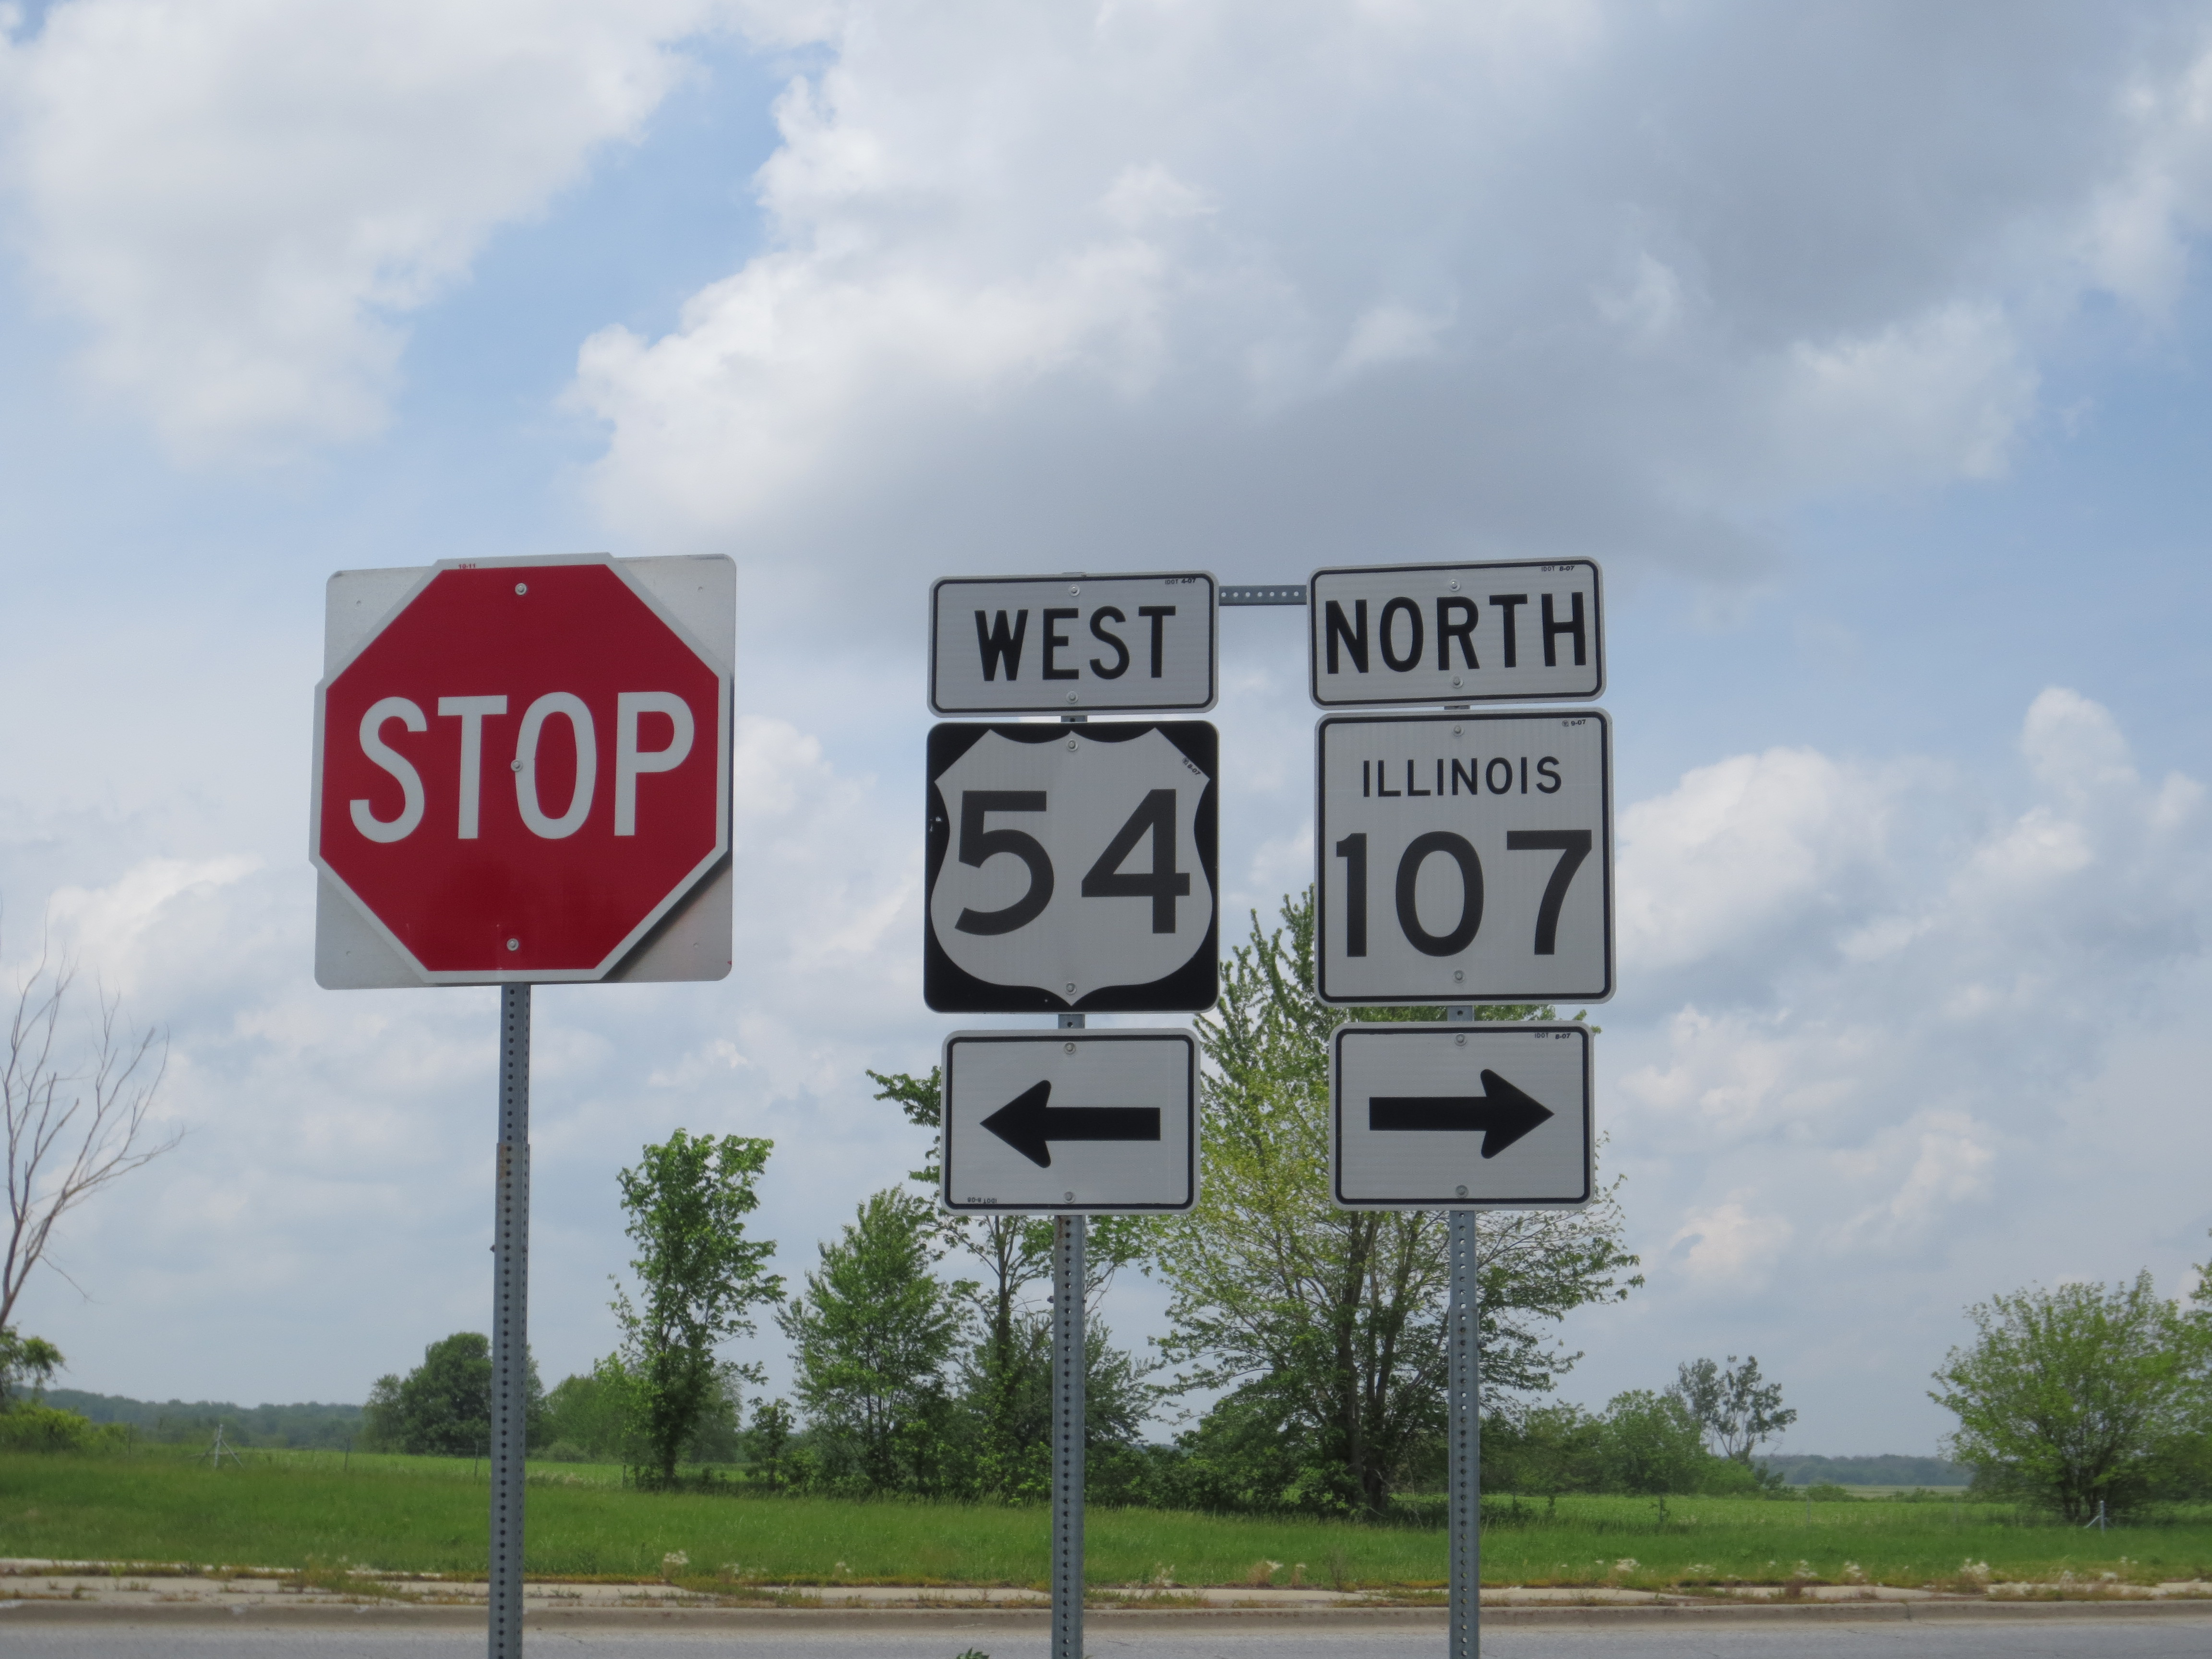 Illinois pike county griggsville - Il 107 Stw